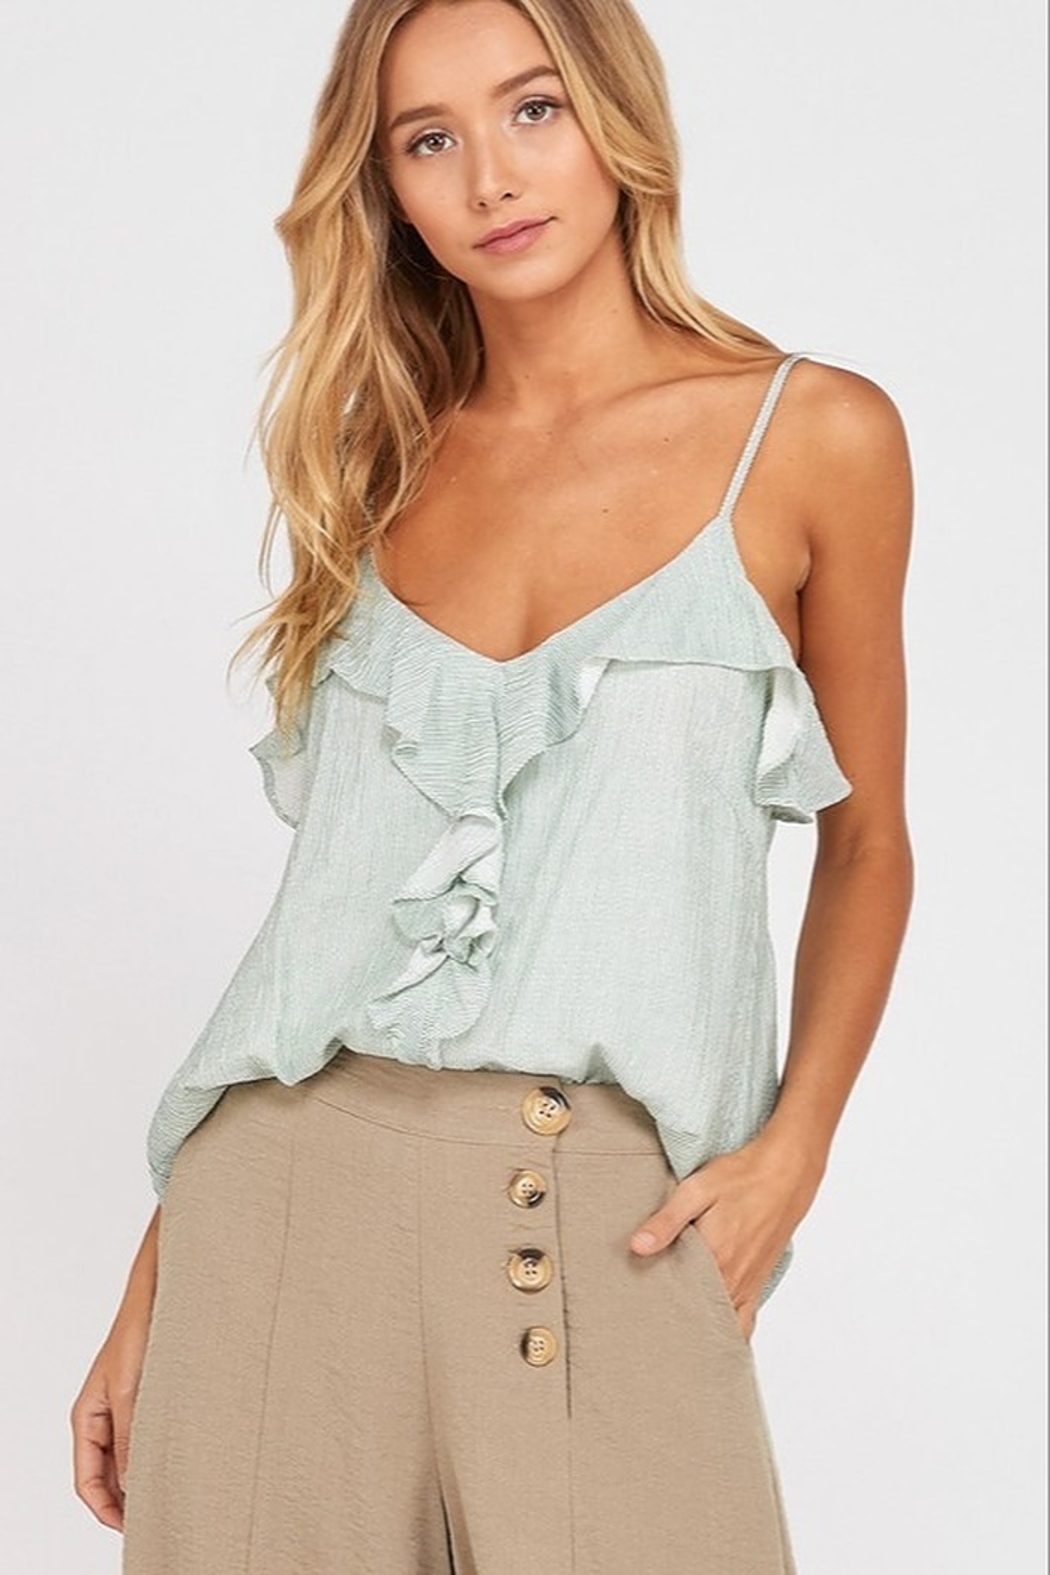 Wishlist Striped Ruffle Cami Top - Front Cropped Image